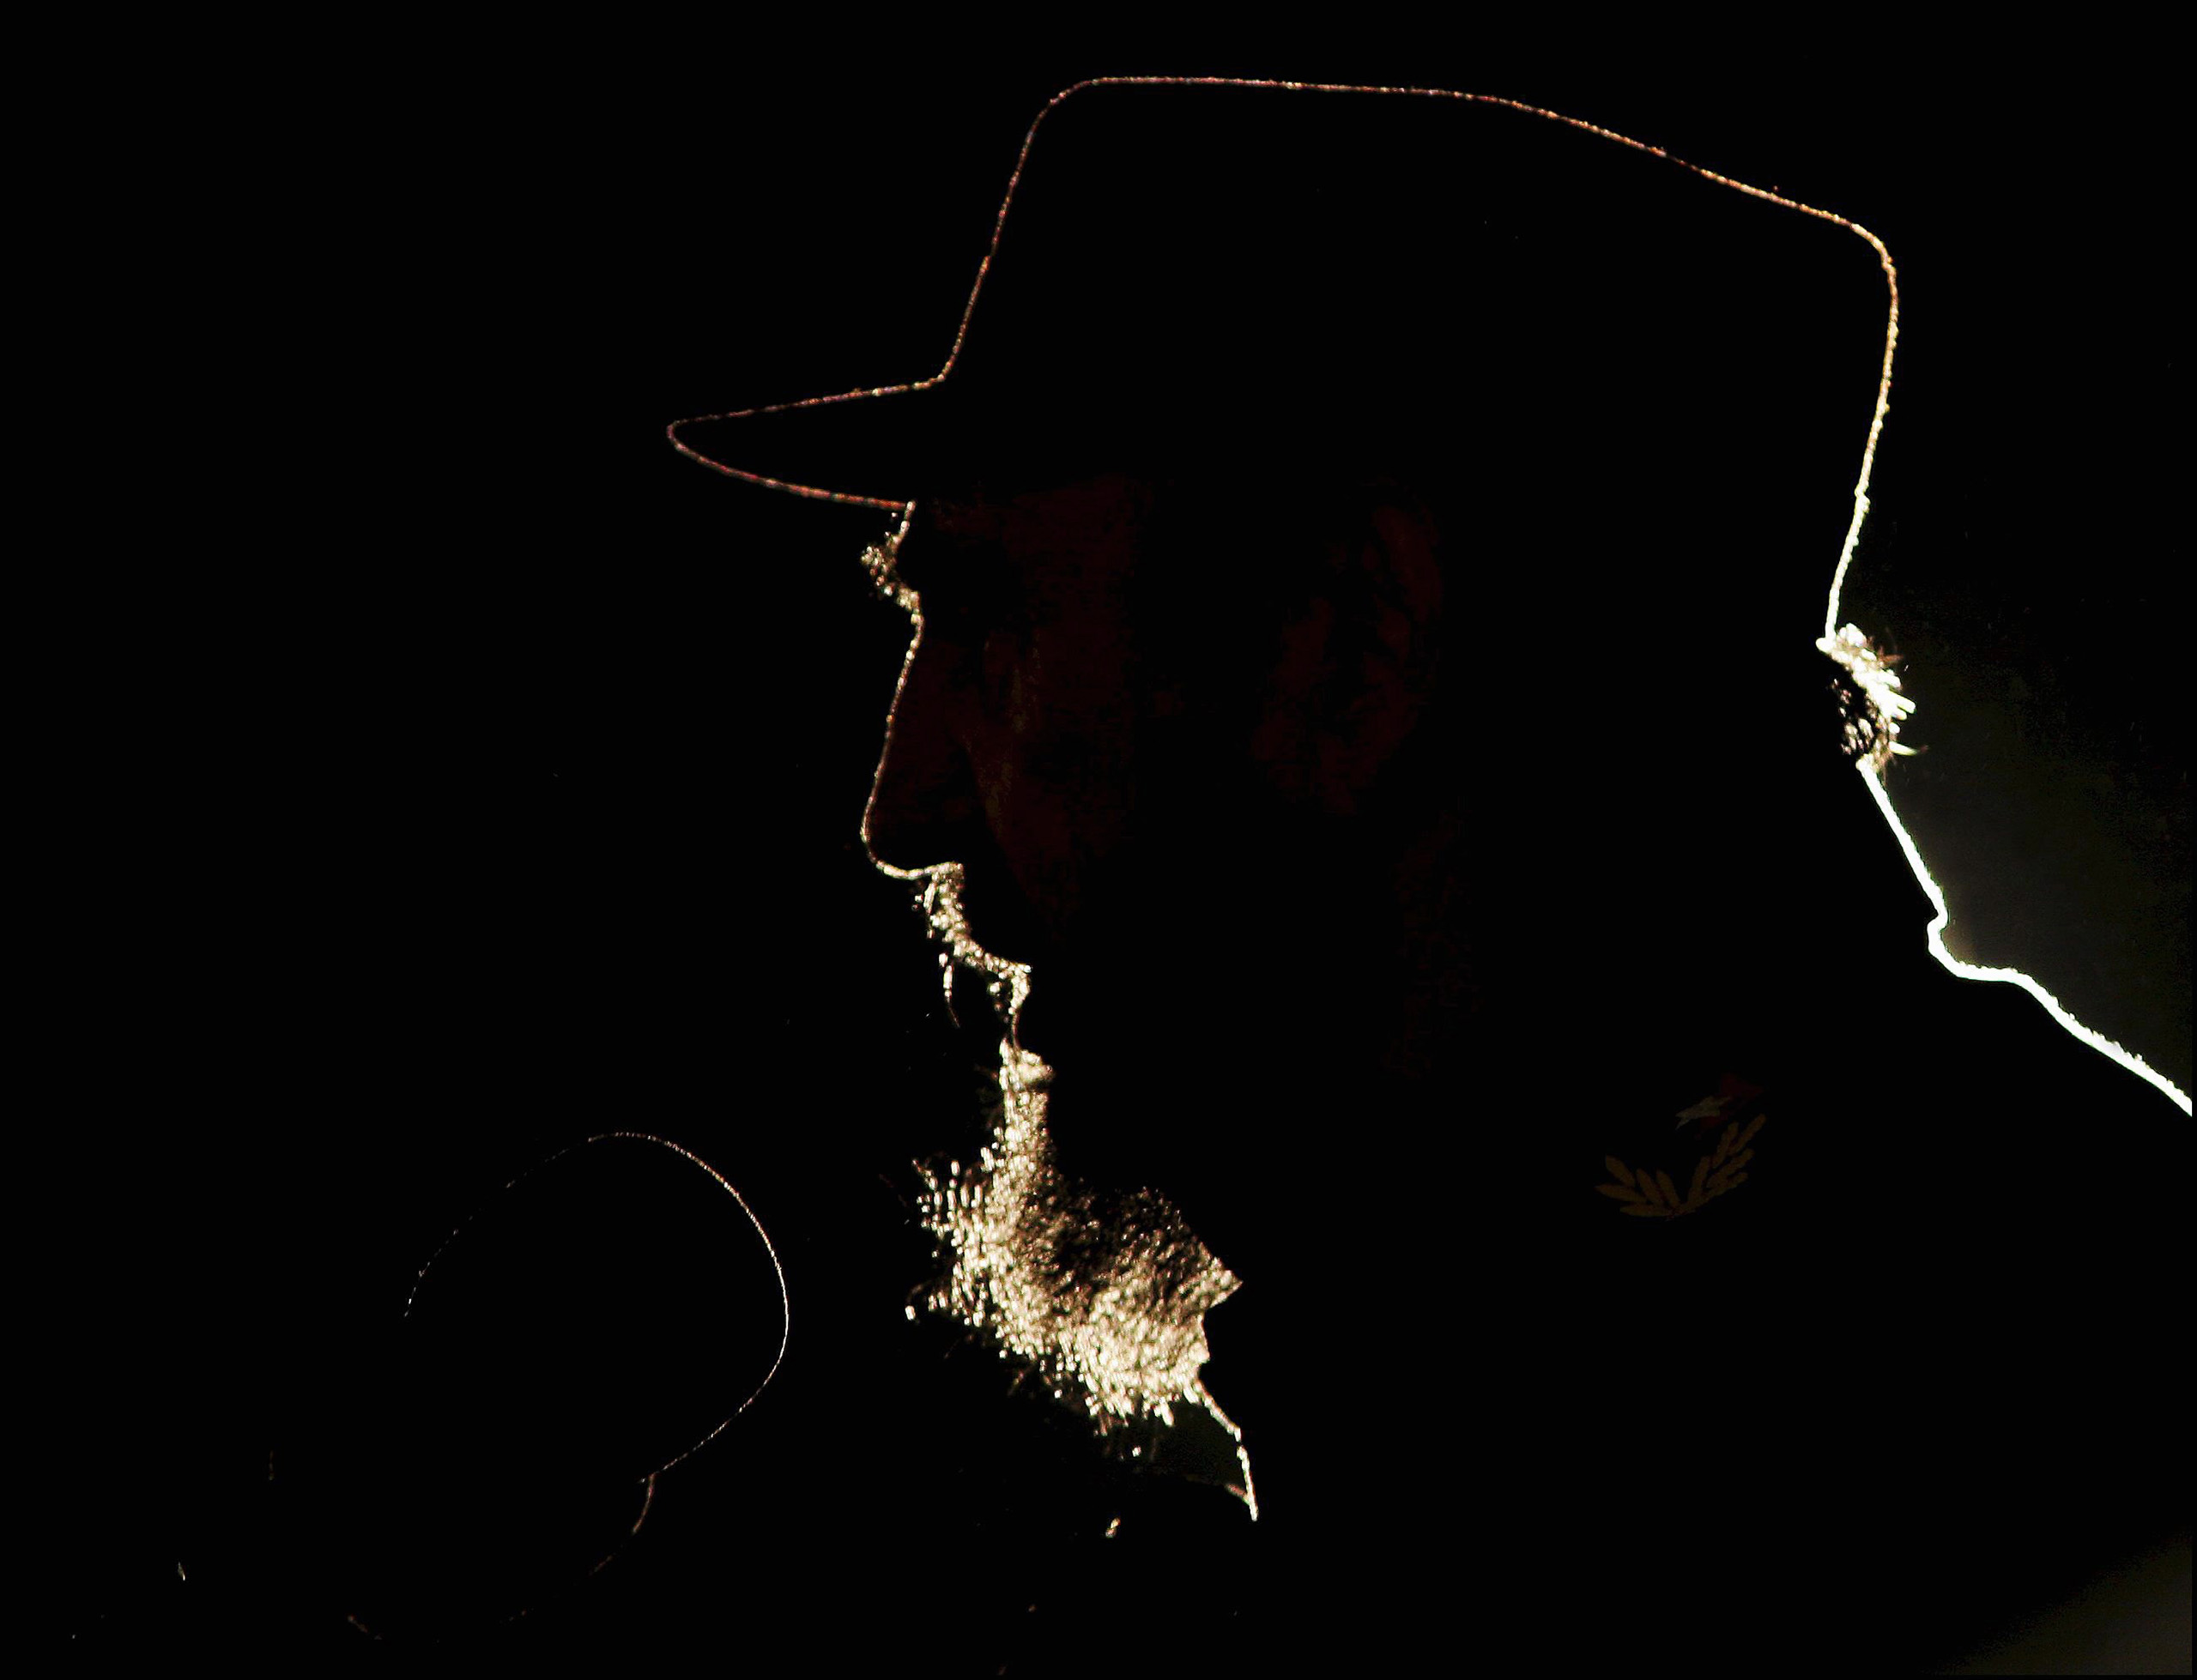 Cuban President Fidel Castro delivers a speech in Havana on Feb. 2, 2006, as Venezuelan President Hugo Chavez, having just been likened to Adolf Hitler by the Bush administration, received a U.N. prize named for Cuban independence hero Jose Mart'i.